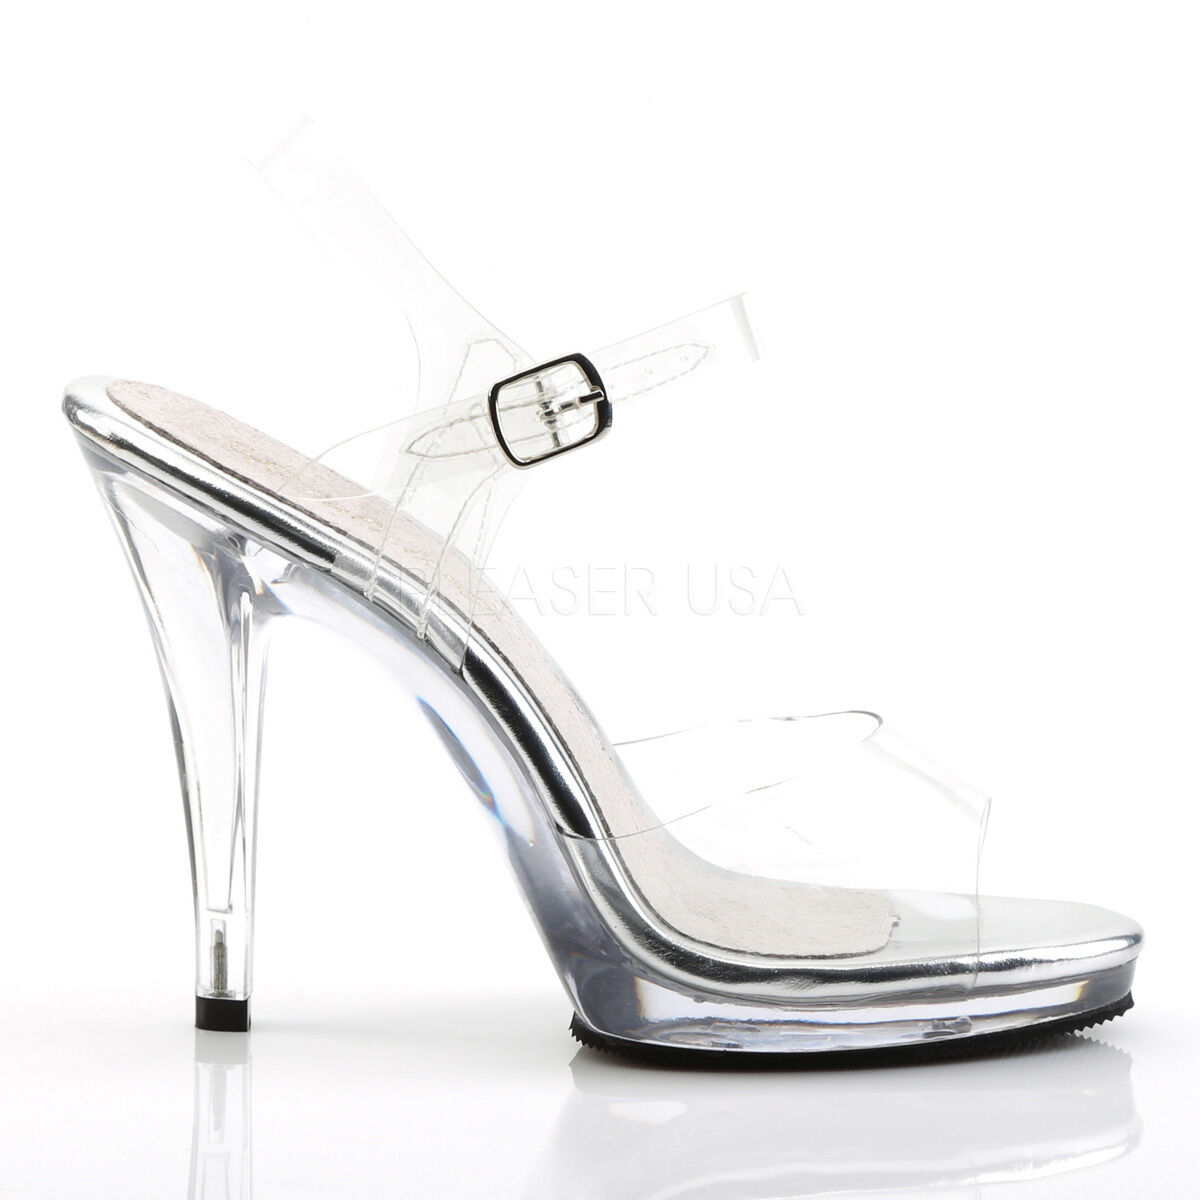 BNIB PLEASER COMPETITION FLAIR 408 CLEAR HEELS Schuhe BIKINI COMPETITION PLEASER STAGE POSING SILVER 15e9d7